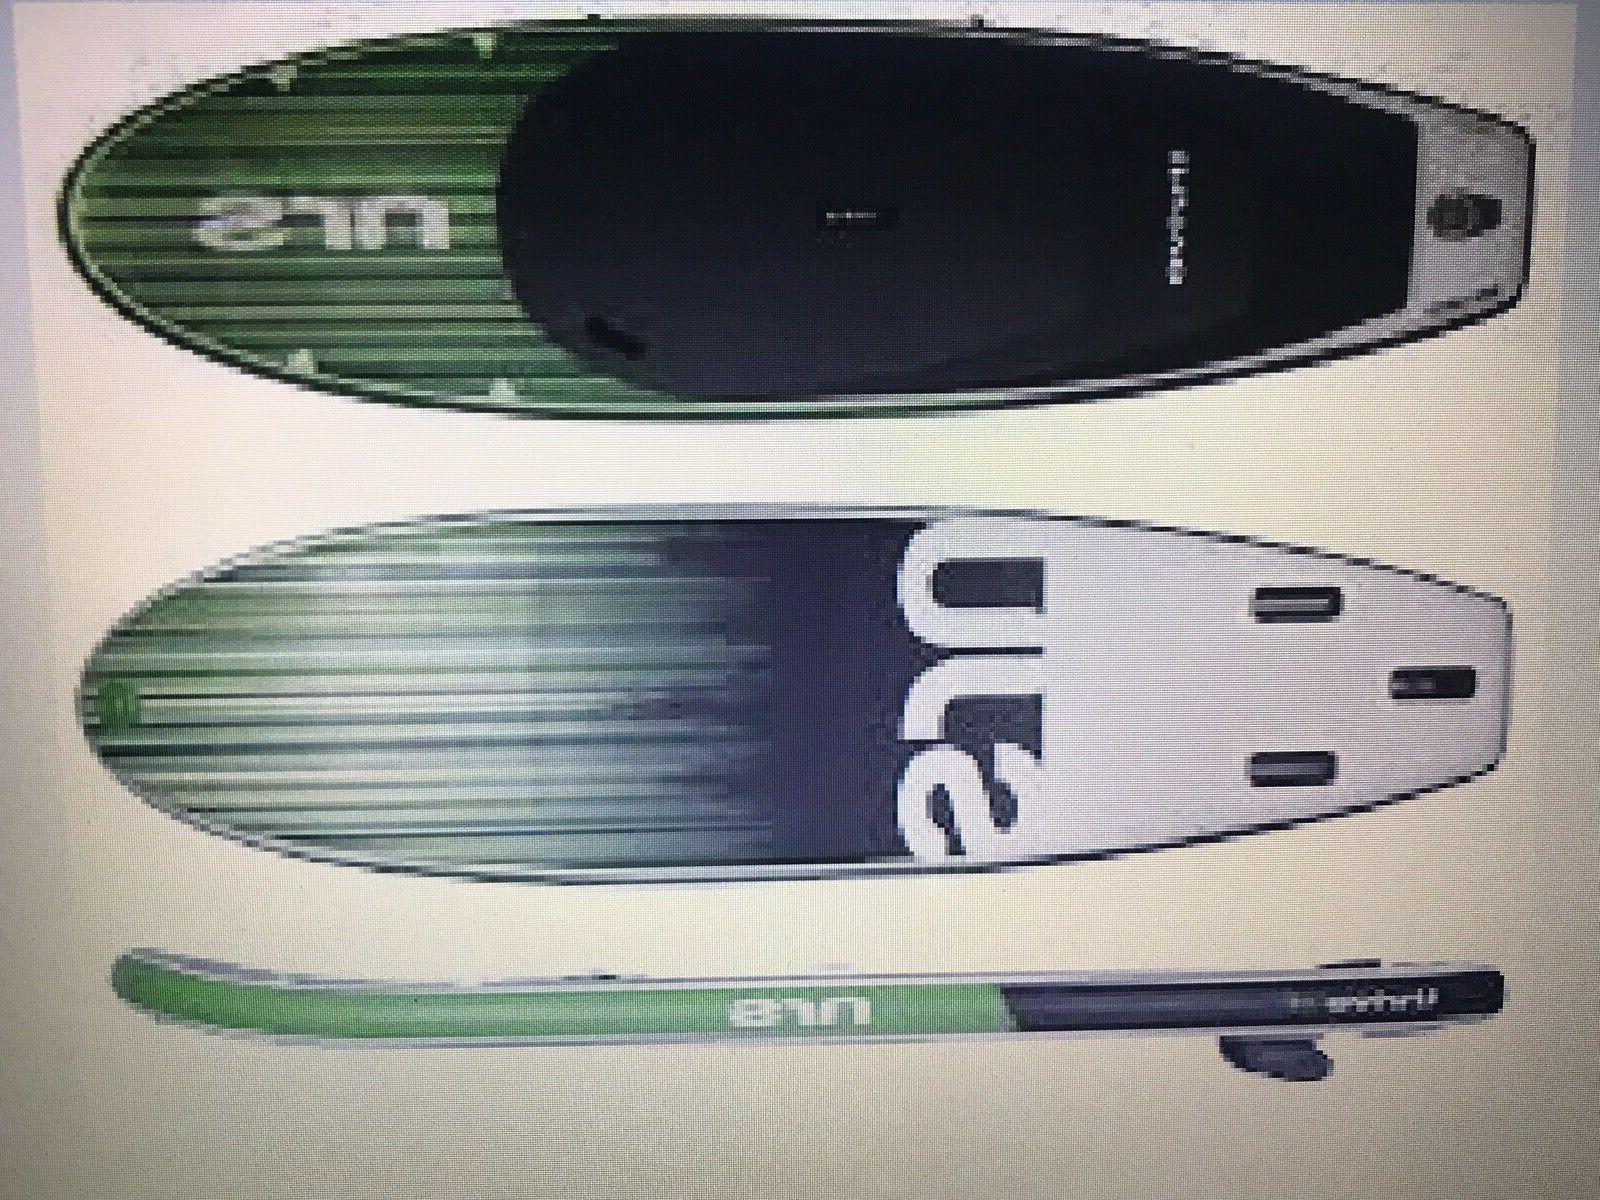 NRS Thrive 11.0 SUP Board